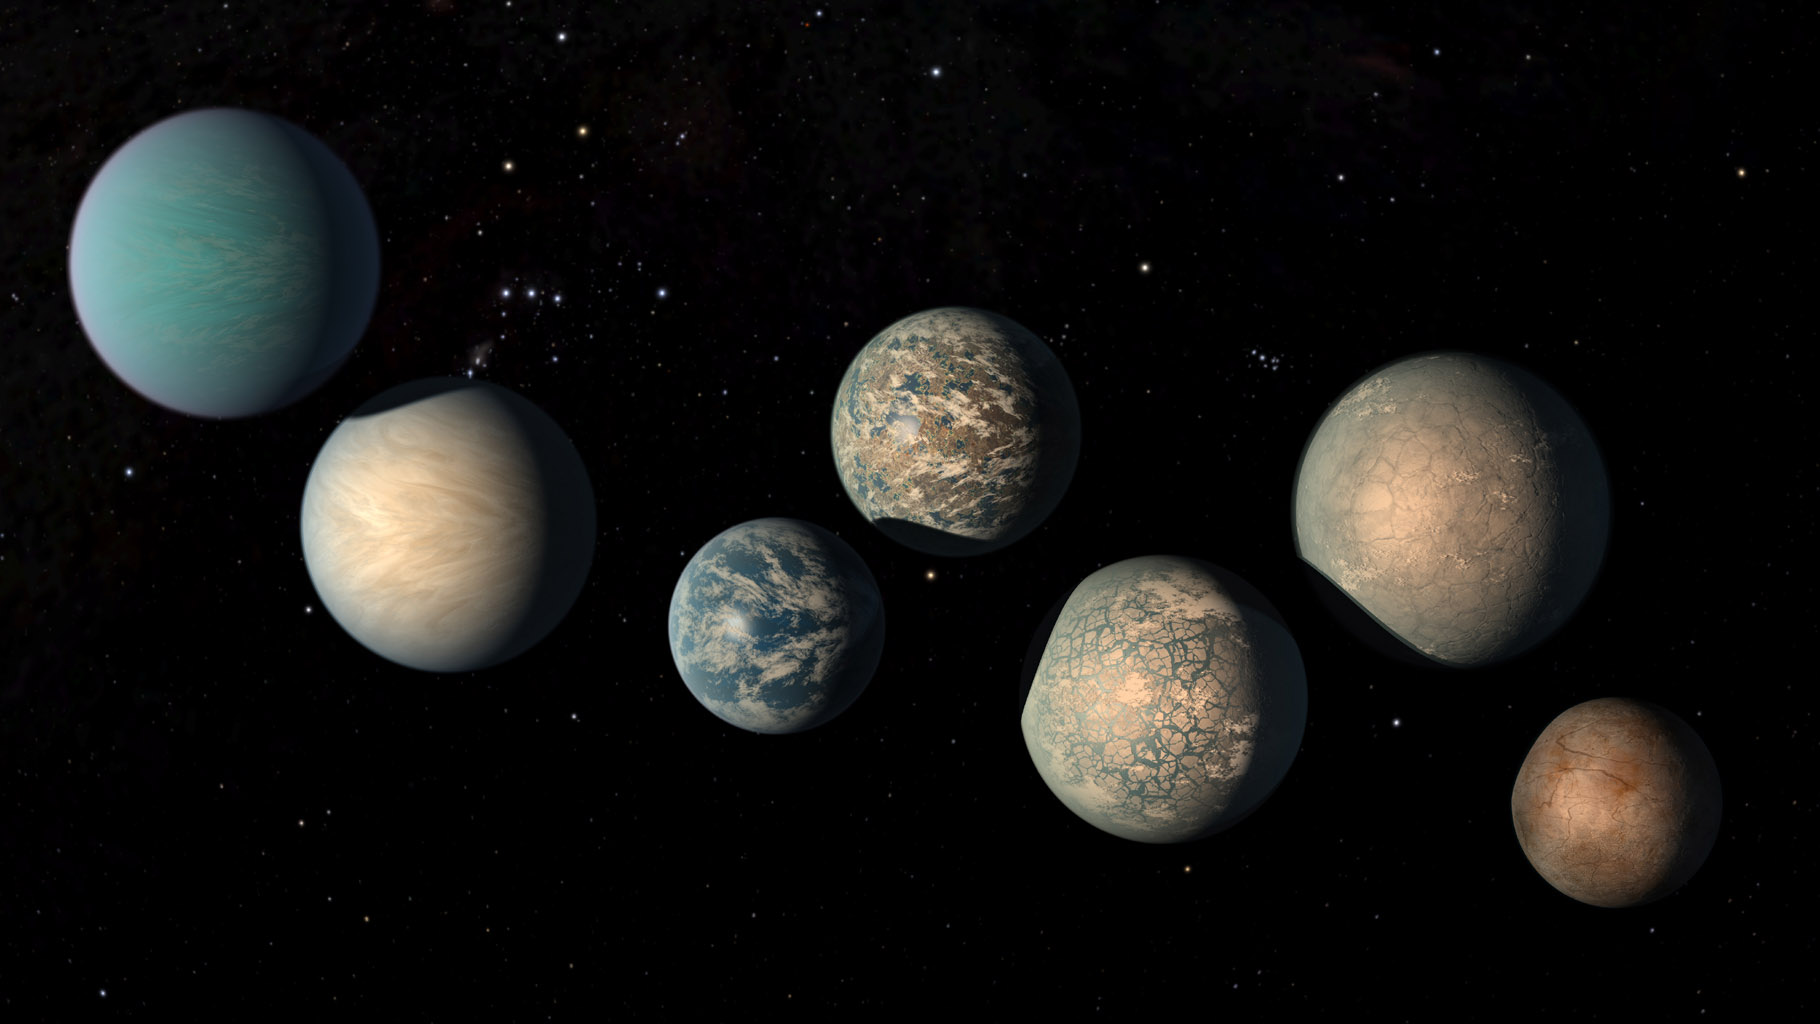 This illustration shows the seven Earth-size planets of TRAPPIST-1. The image does not show the planets' orbits to scale, but highlights possibilities for how the surfaces of these intriguing worlds might look.